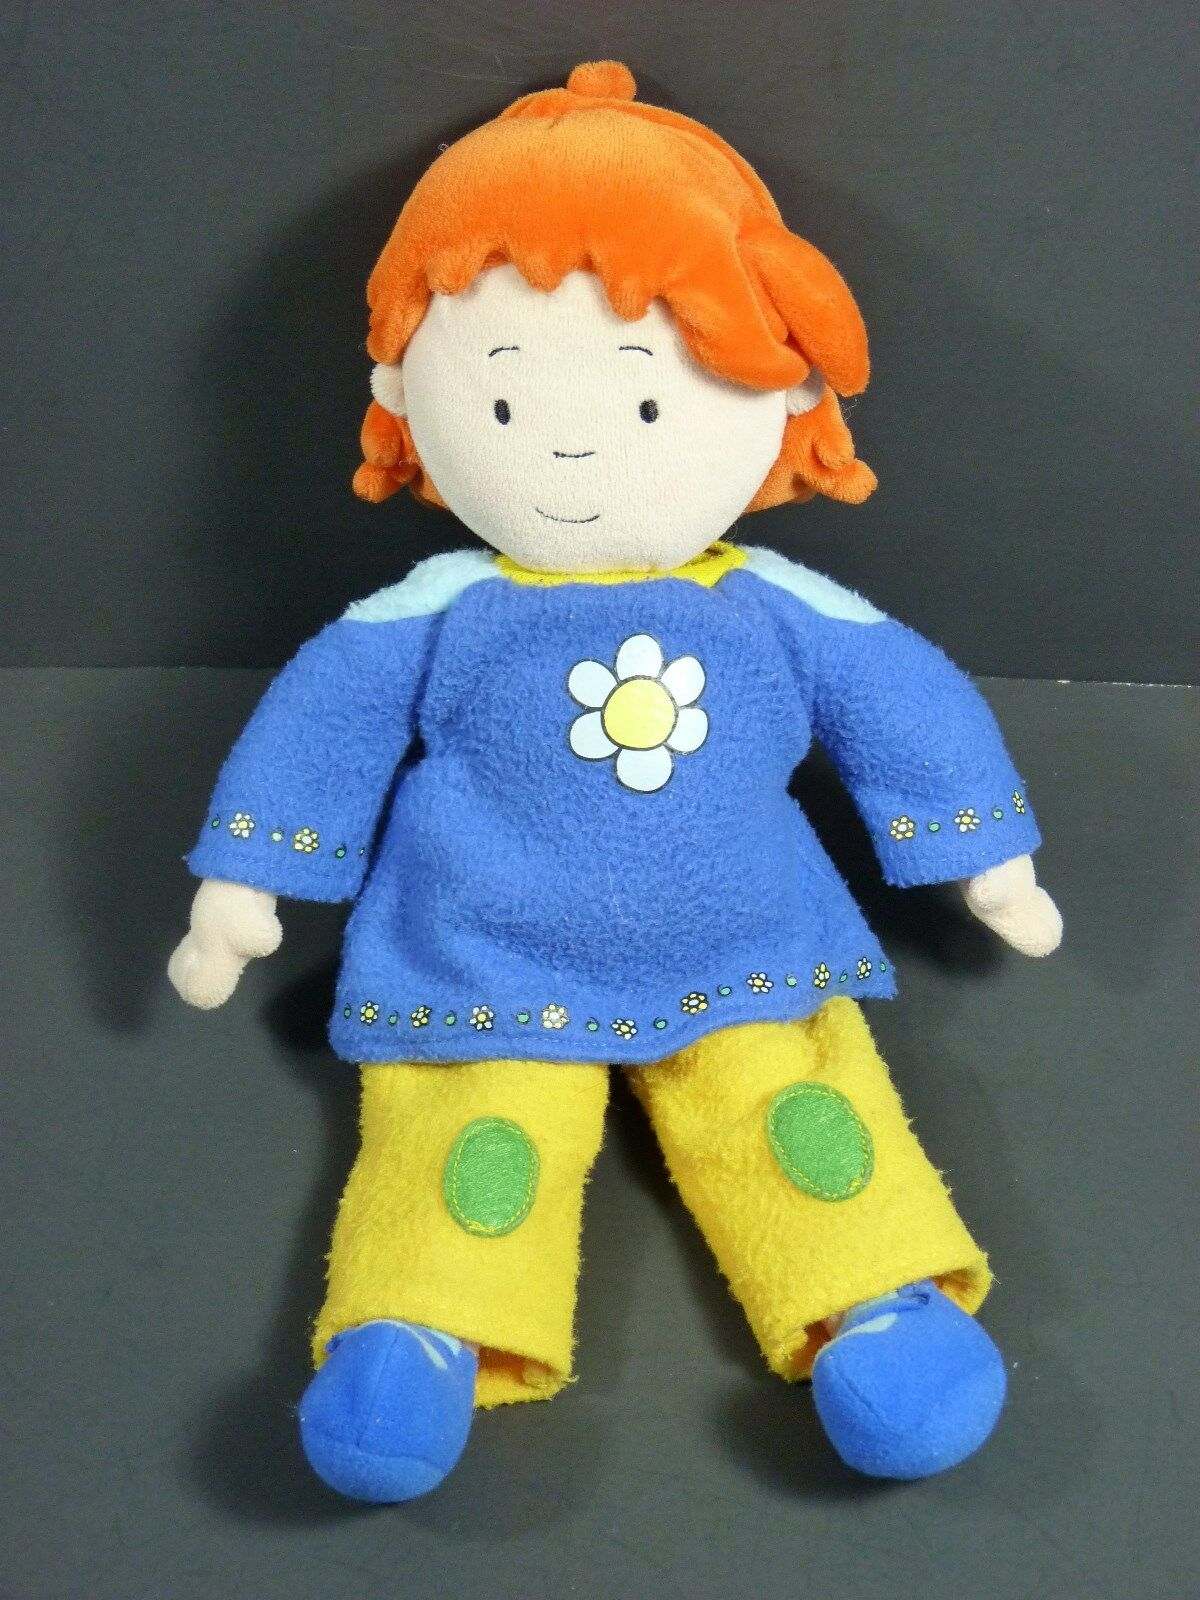 Rosie 12'' Stuffed Plush Doll (Caillou Sister) Sister) Sister) 2002 5f4682